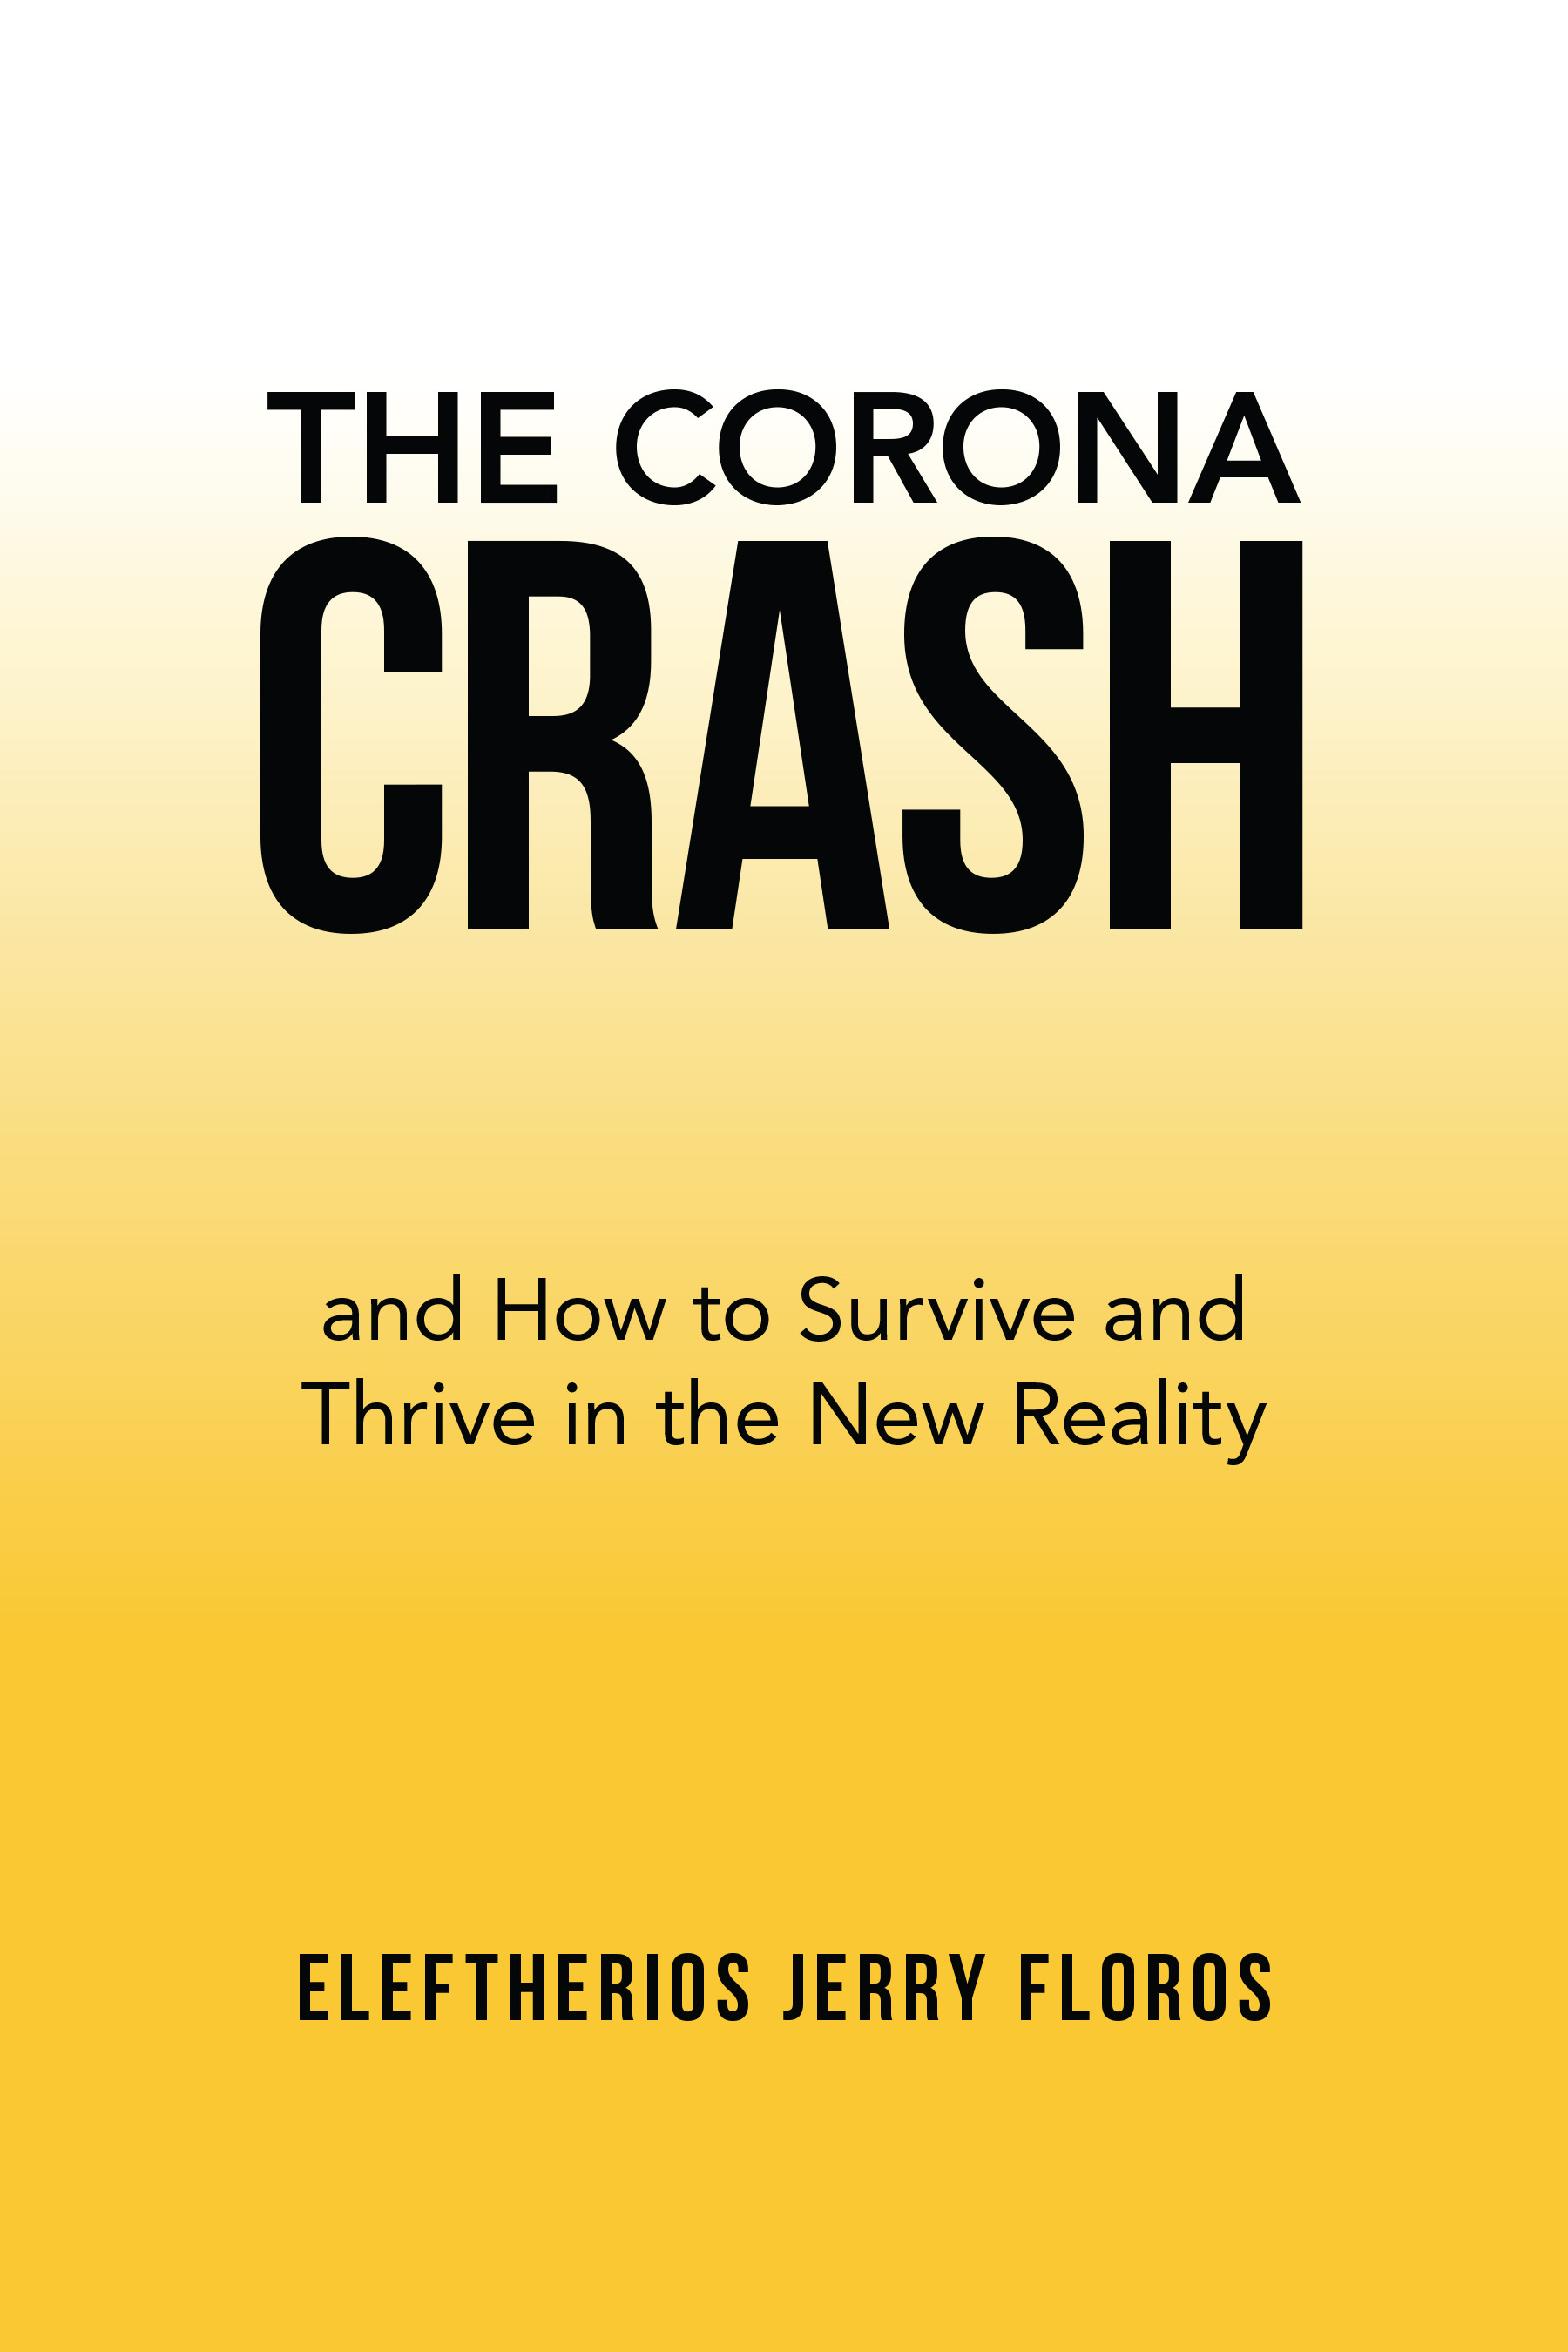 The_Corona_Crash.jpg